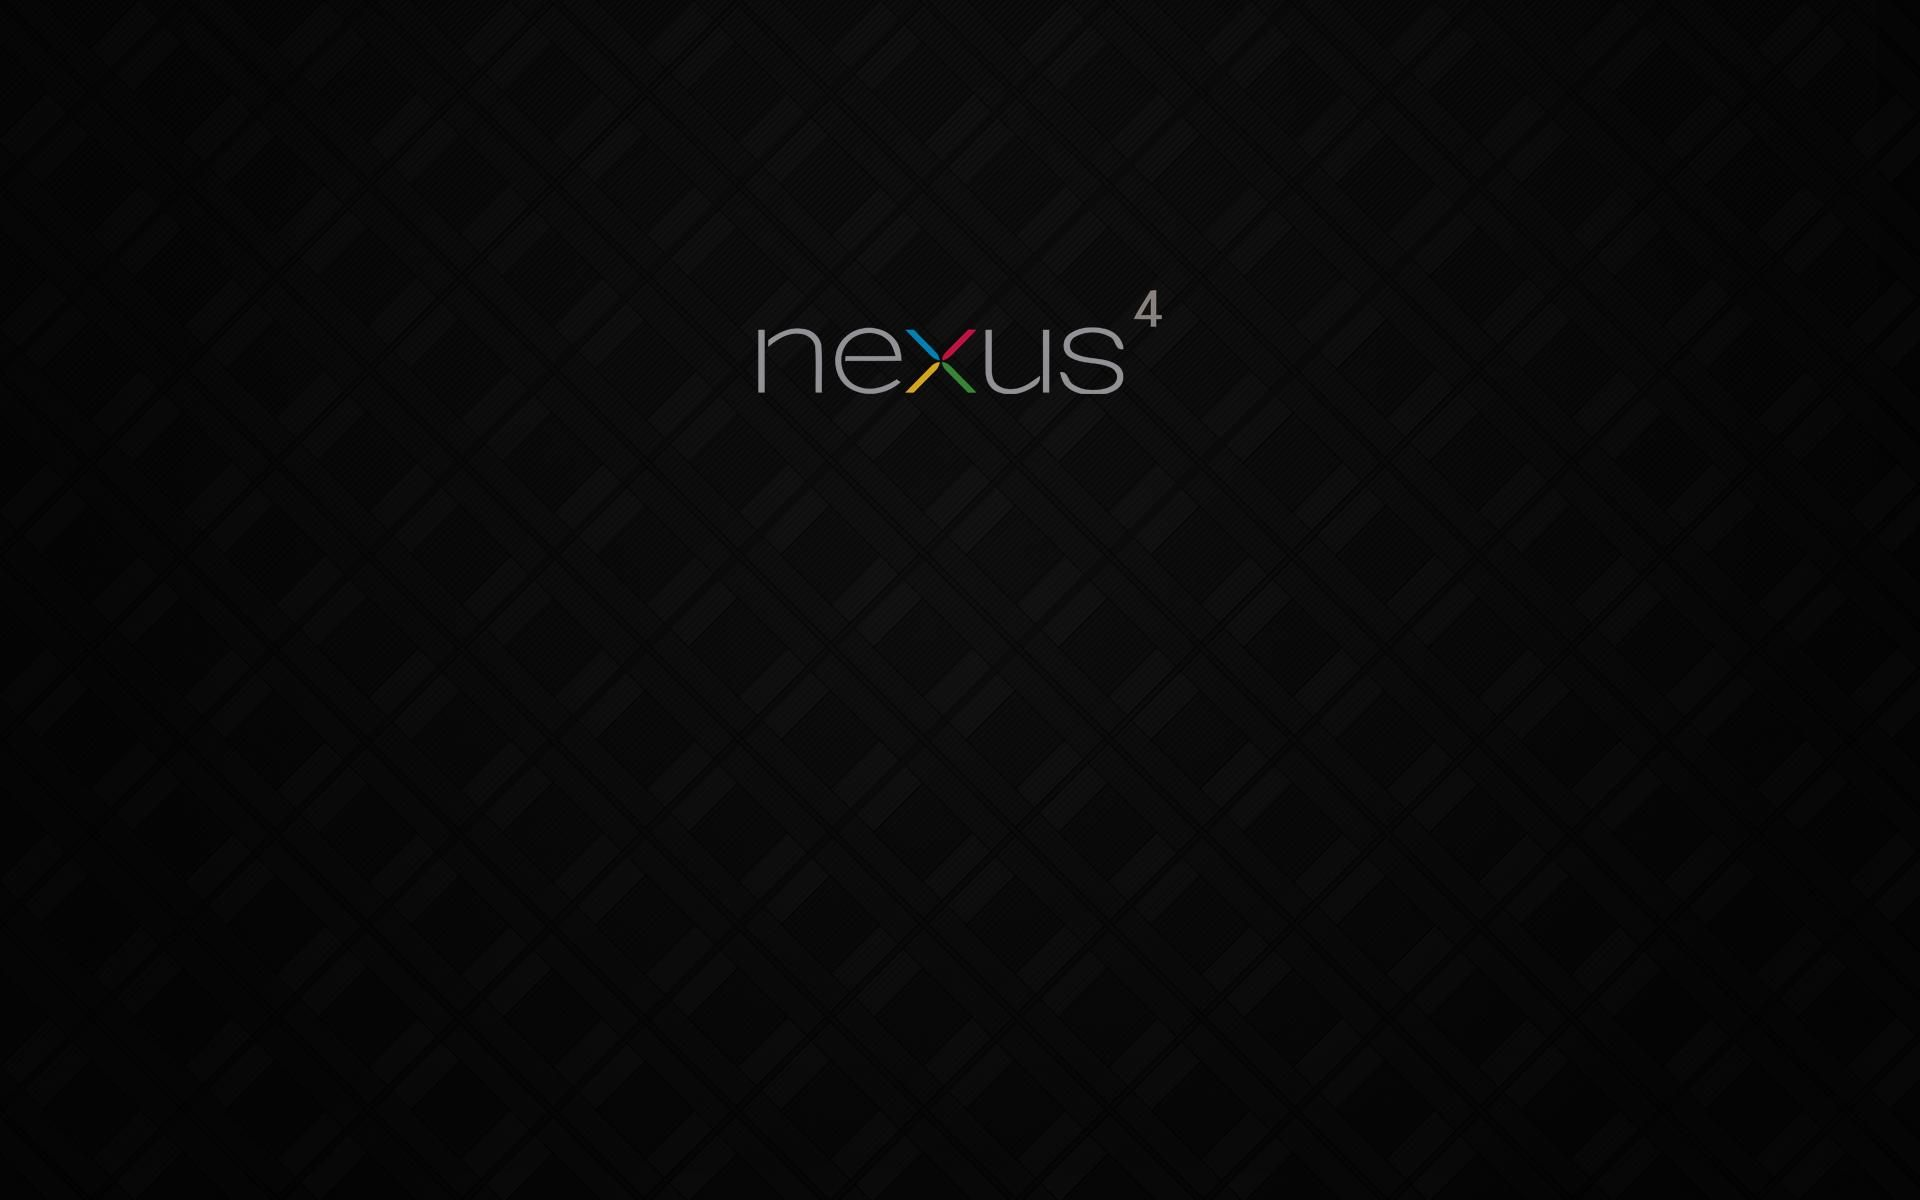 nexus official wallpaper for x htc htc one m